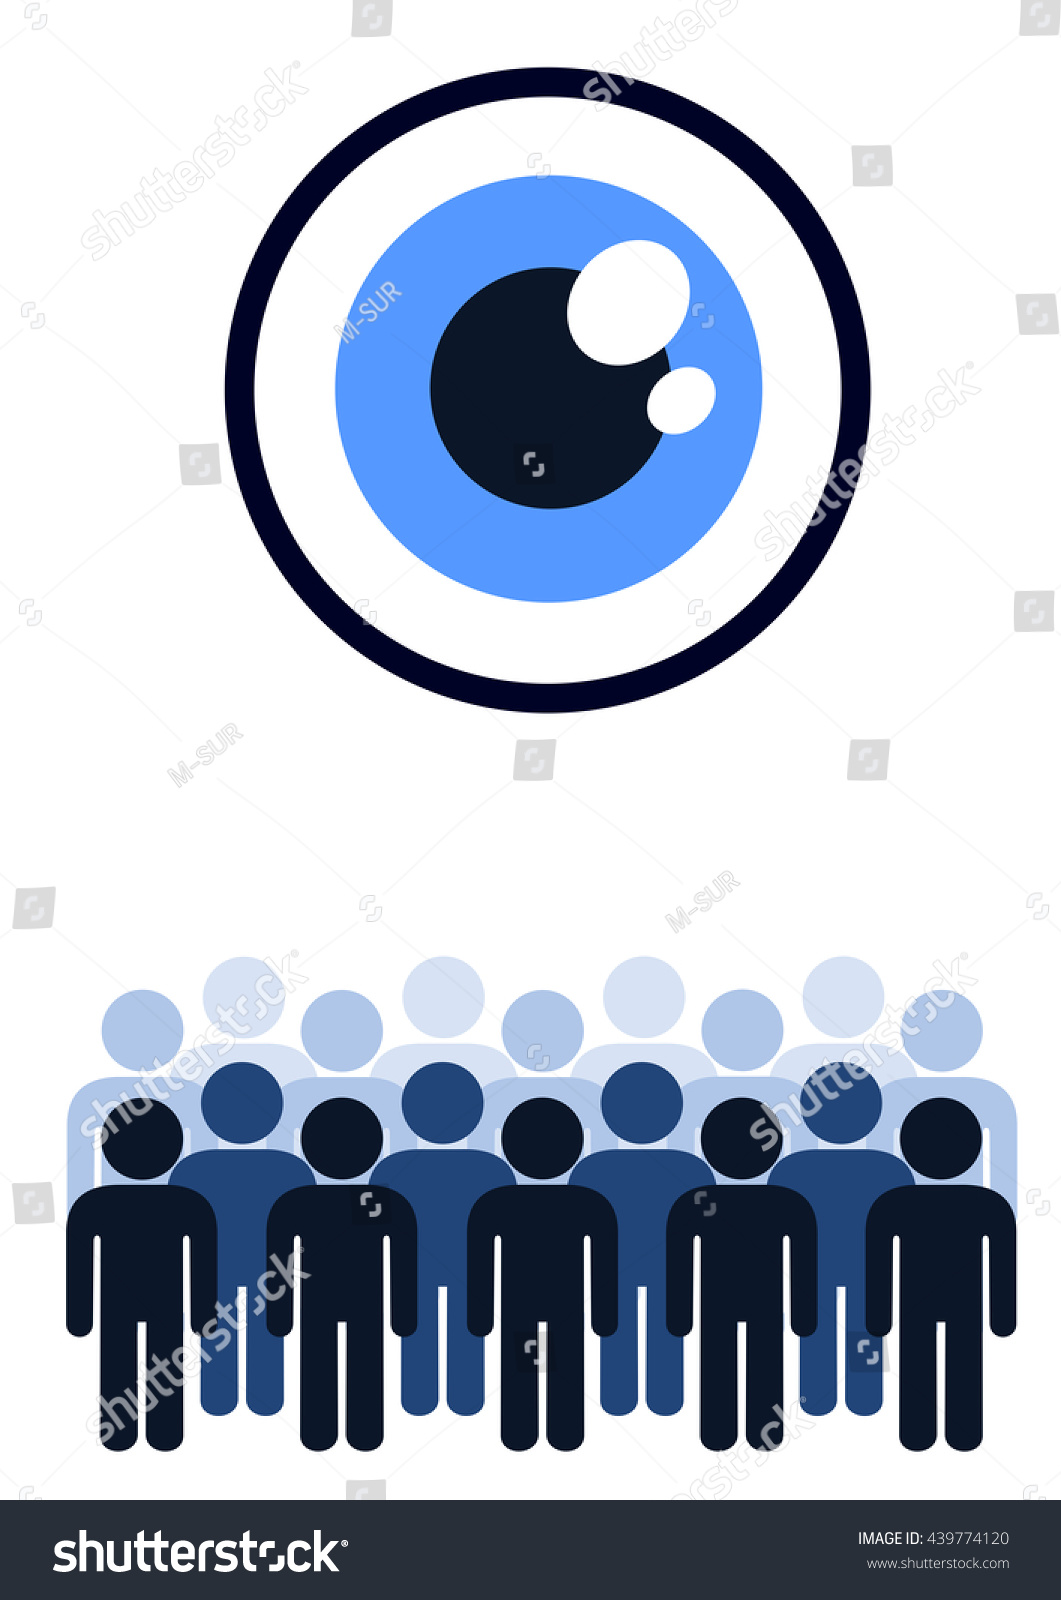 Controlling crowd by eye positive negative stock vector 439774120 controlling crowd by eye positive negative meaning totalitarian oppression of society by secret biocorpaavc Images